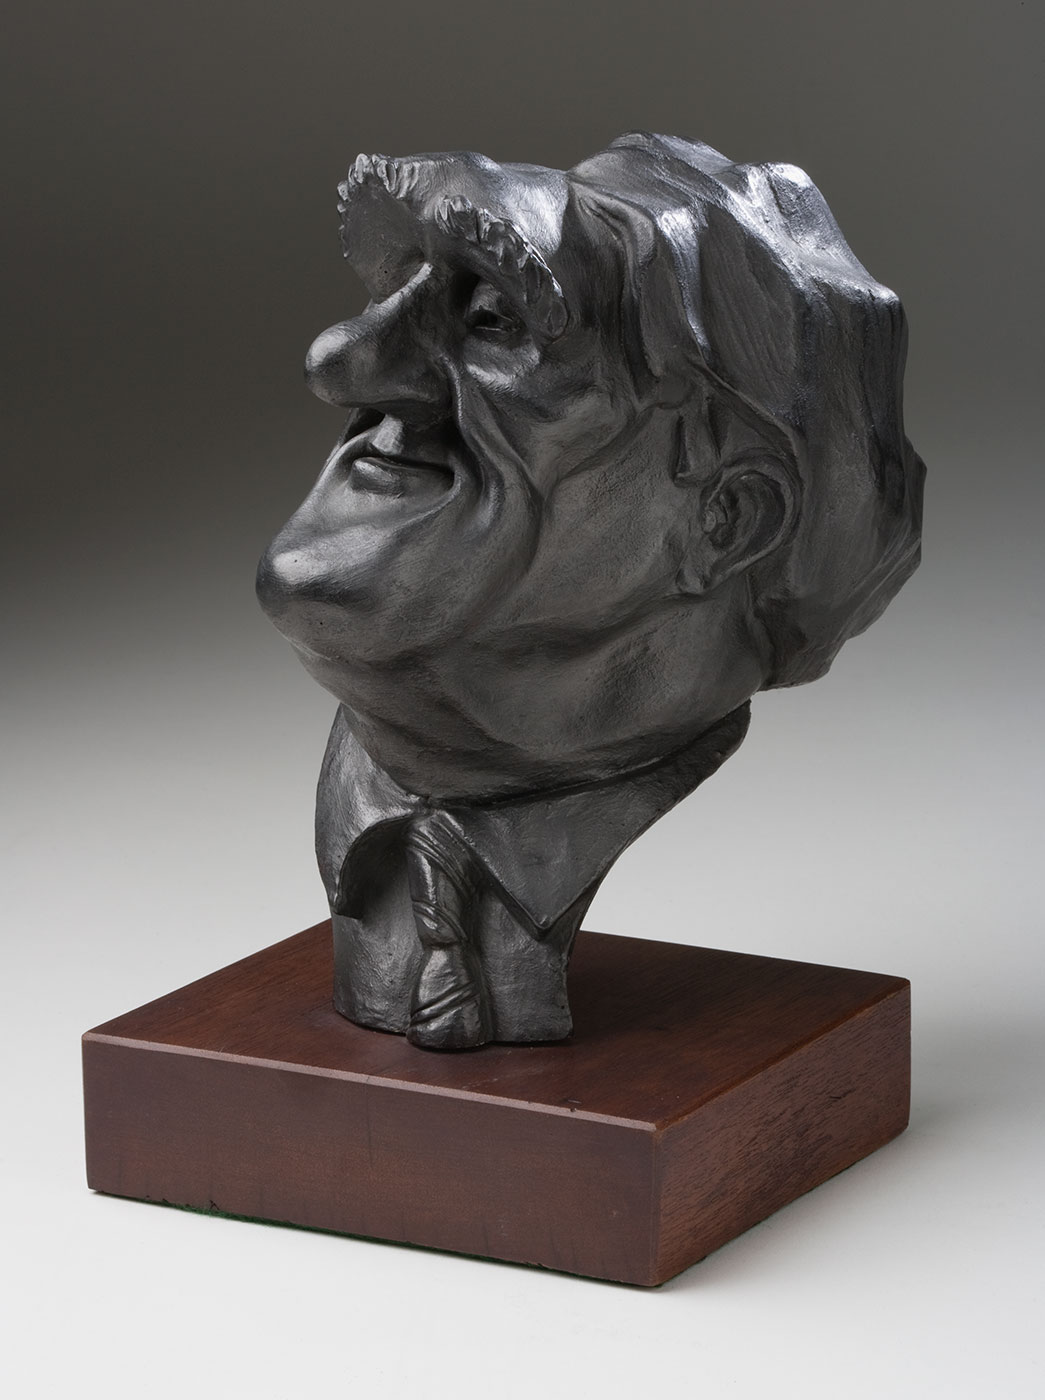 Sculpture titled 'The Dismissal - 20th Anniversary' by John Shakespeare. Three-dimensional comical figures of Opposition Leader Malcolm Fraser, Governor General Sir John Kerr, and Prime Minister Gough Whitlam are mounted on a piece of black painted board. The figure of Kerr is about to club Whitlam with a bottle of Champagne, while Fraser holds Kerr's coat tails. - click to view larger image